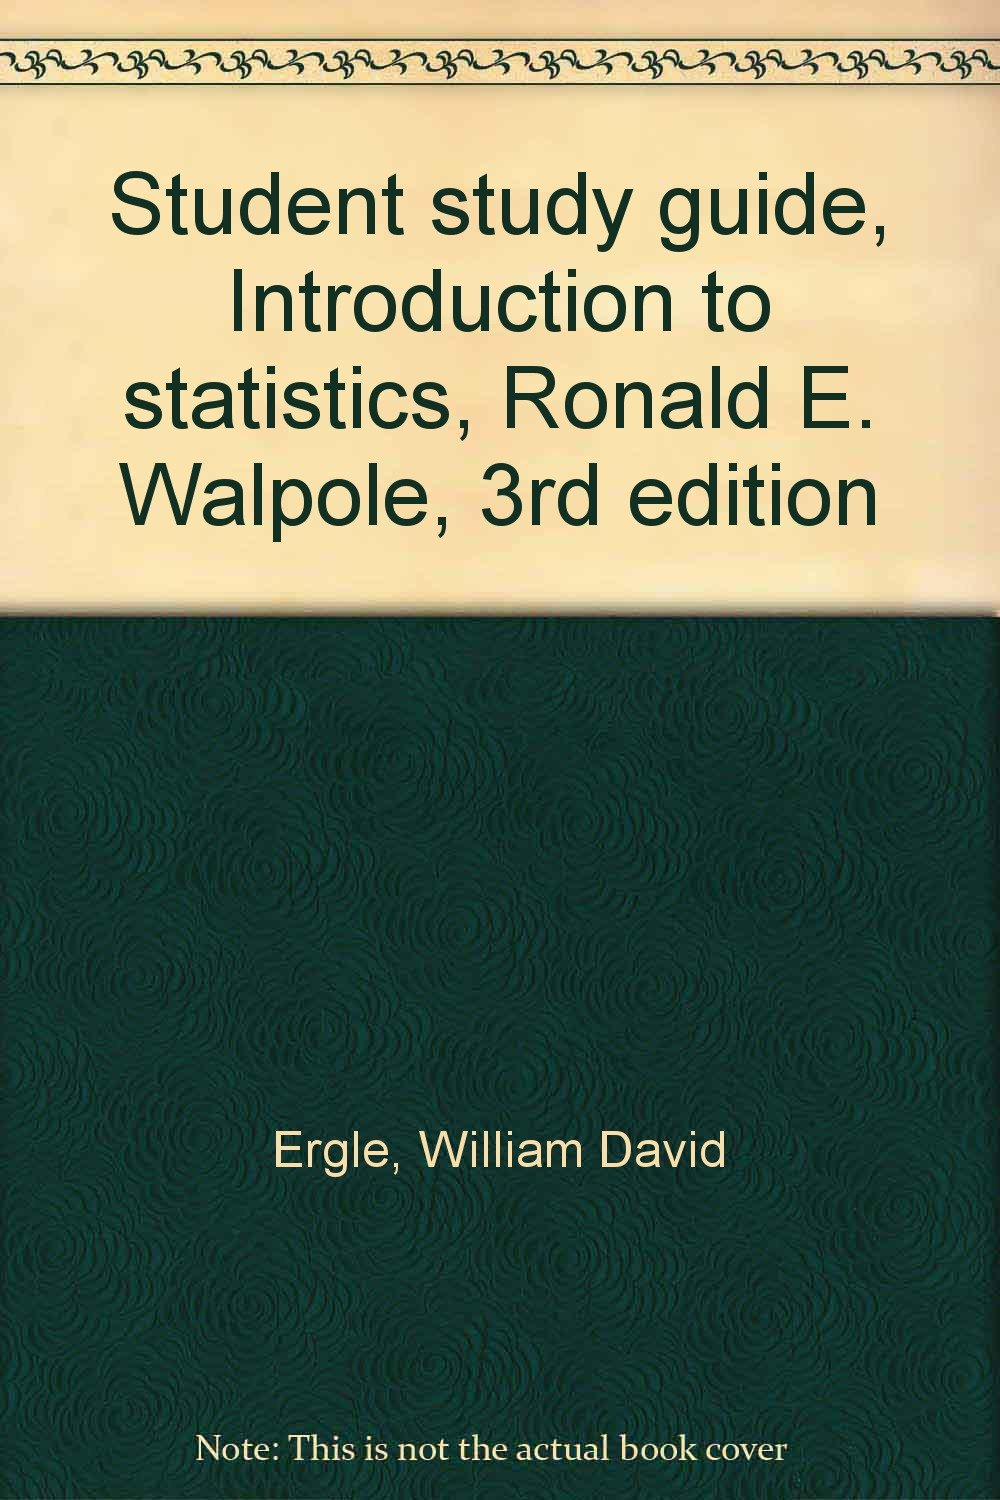 Student study guide, introduction to statistics, ronald e. Walpole.